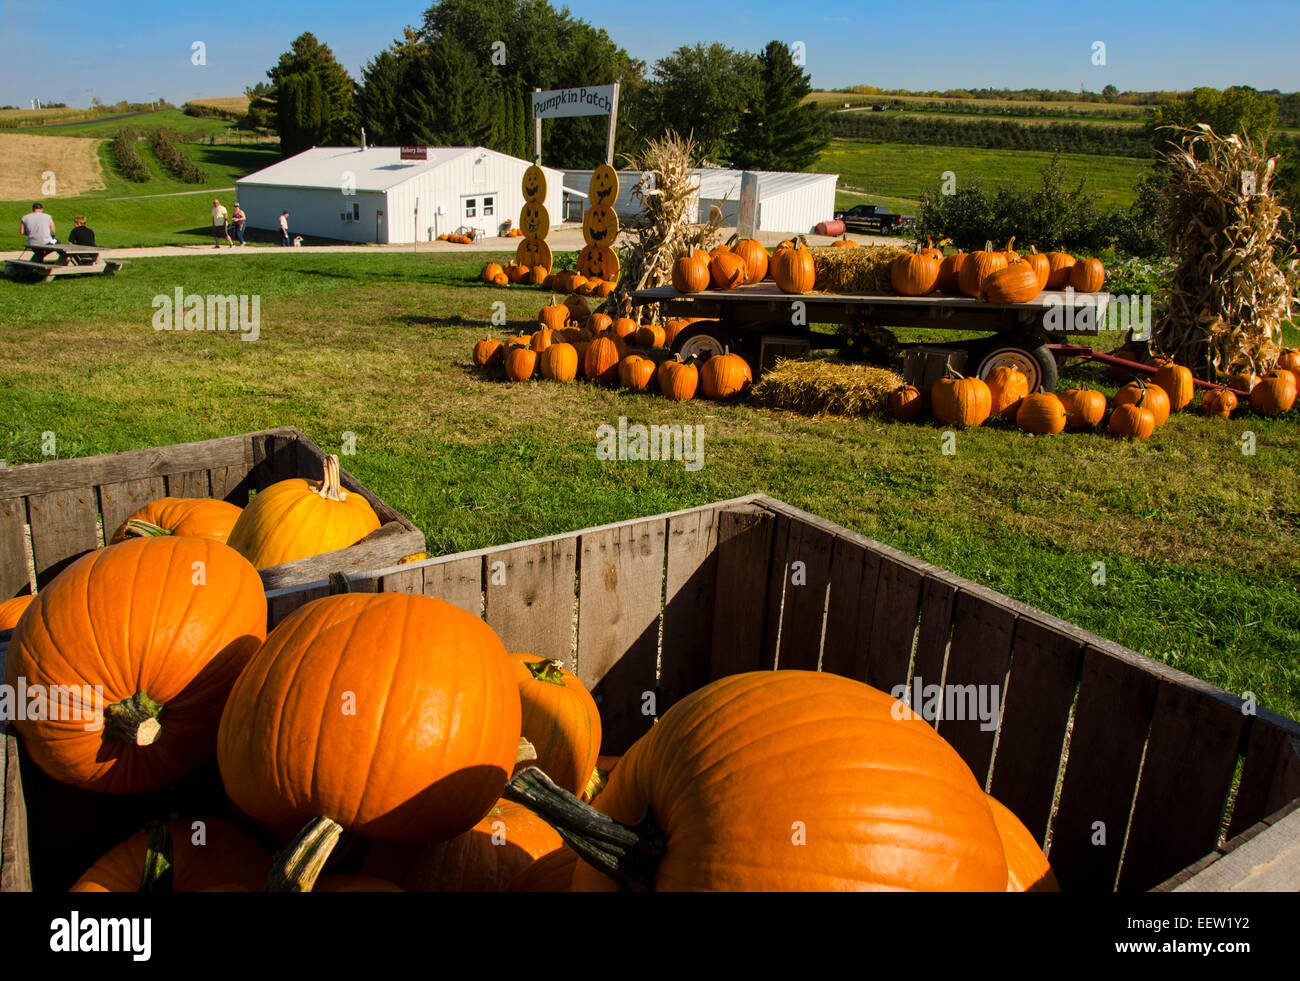 Pumpkins for sale at Shihata's Orchard and Apple House near Prairie du Chien, Wisconsin - Stock Image